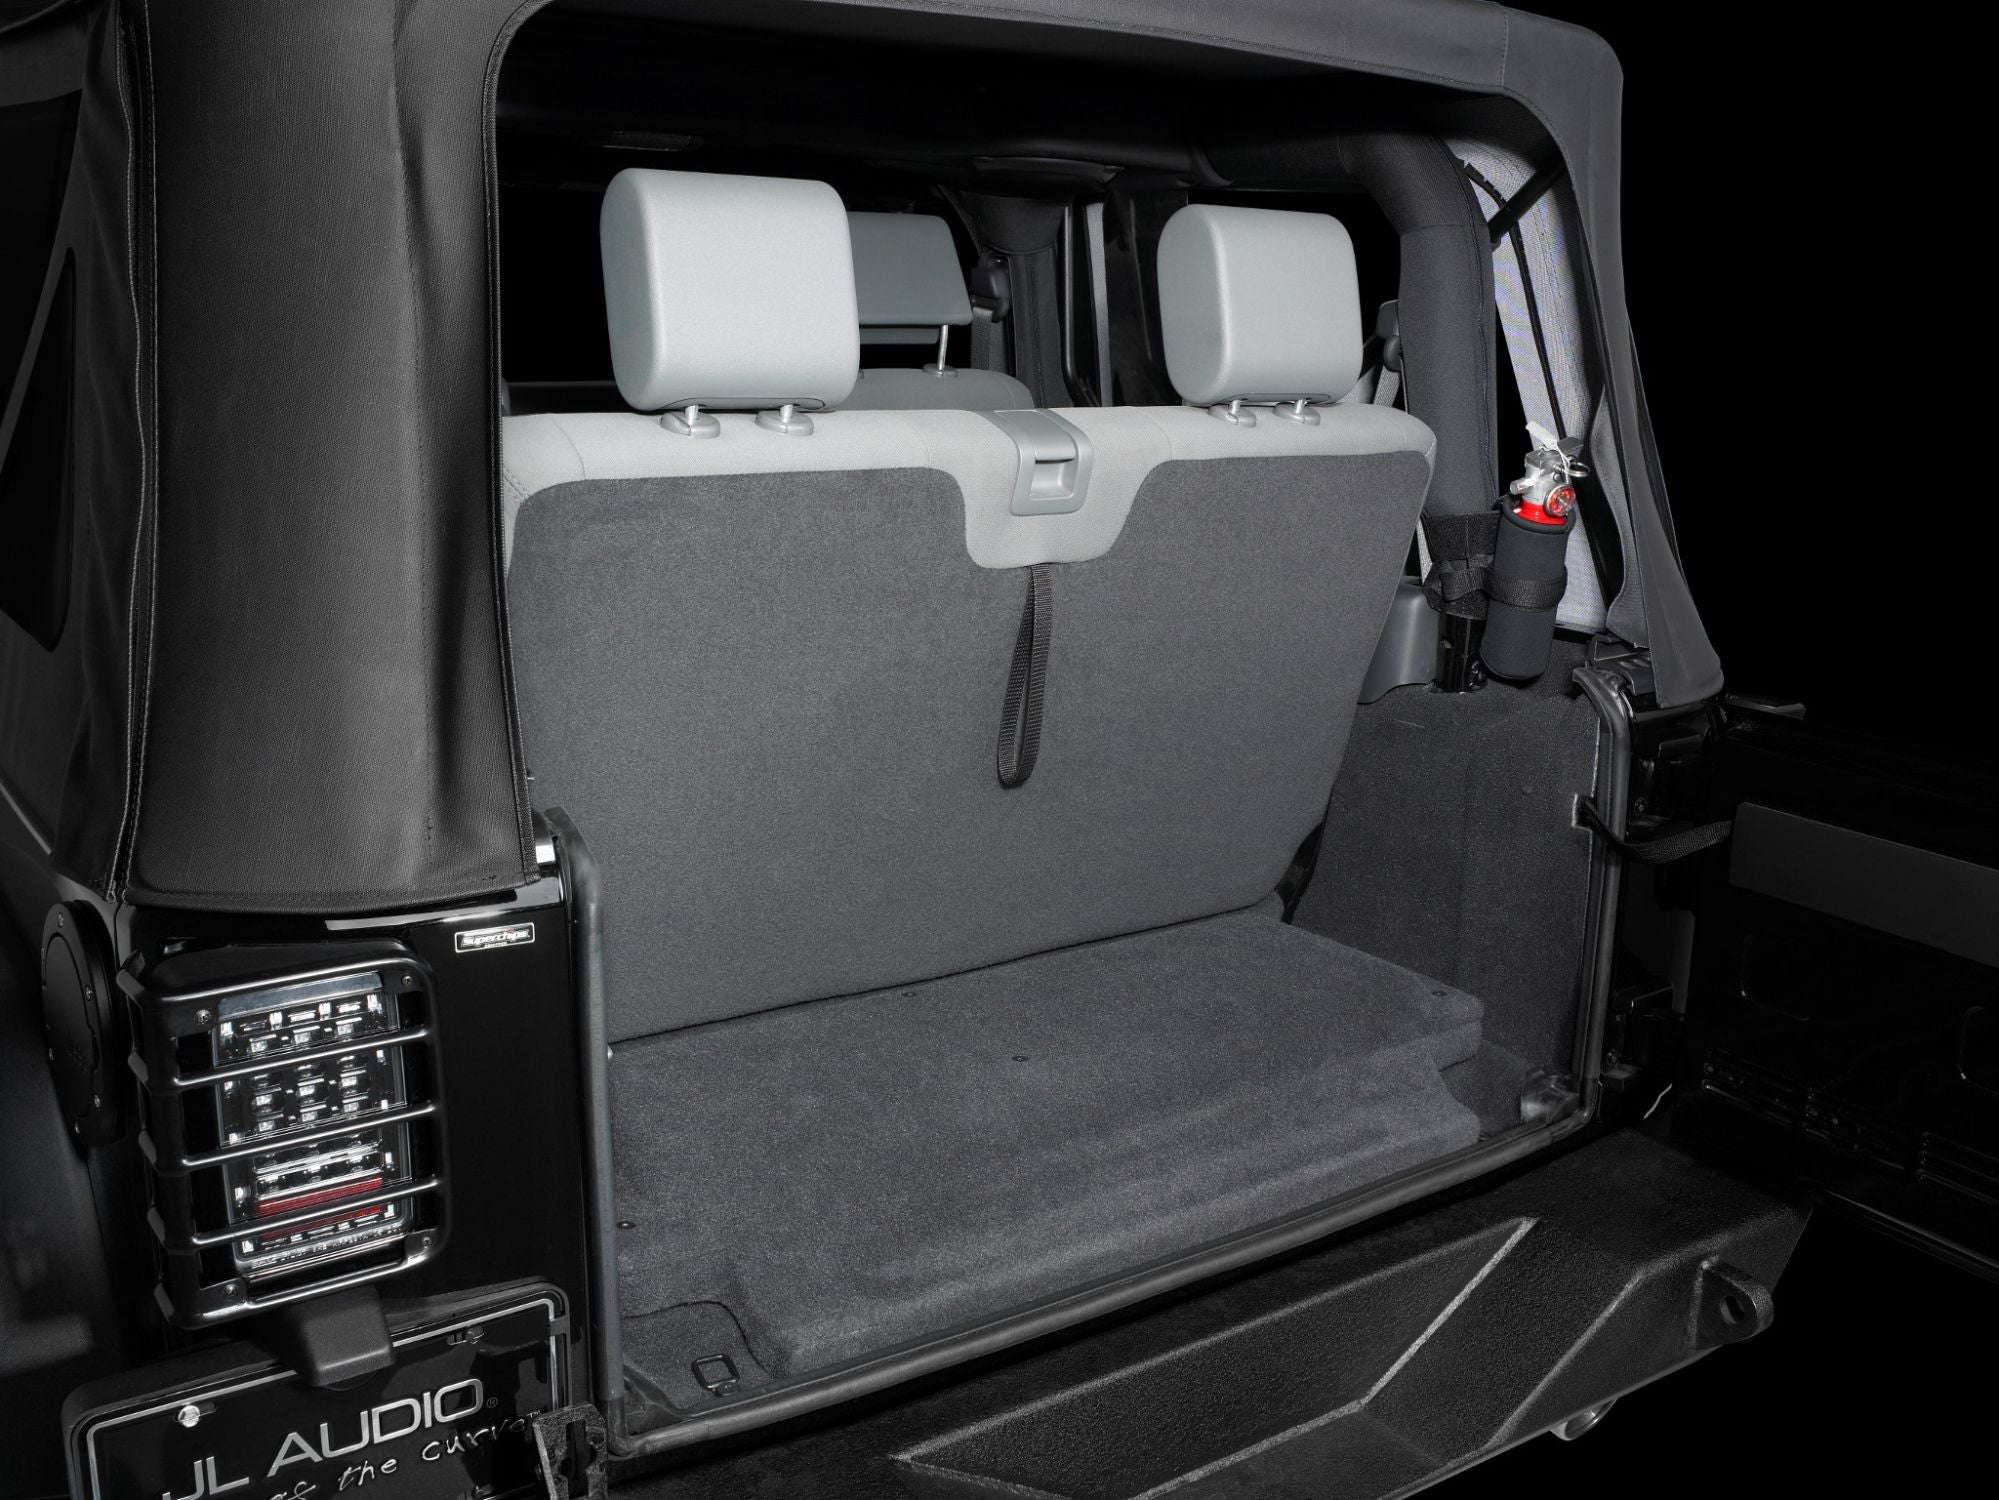 SB-J-JK2DR-10W1v3 Stealthbox Installed in Vehicle